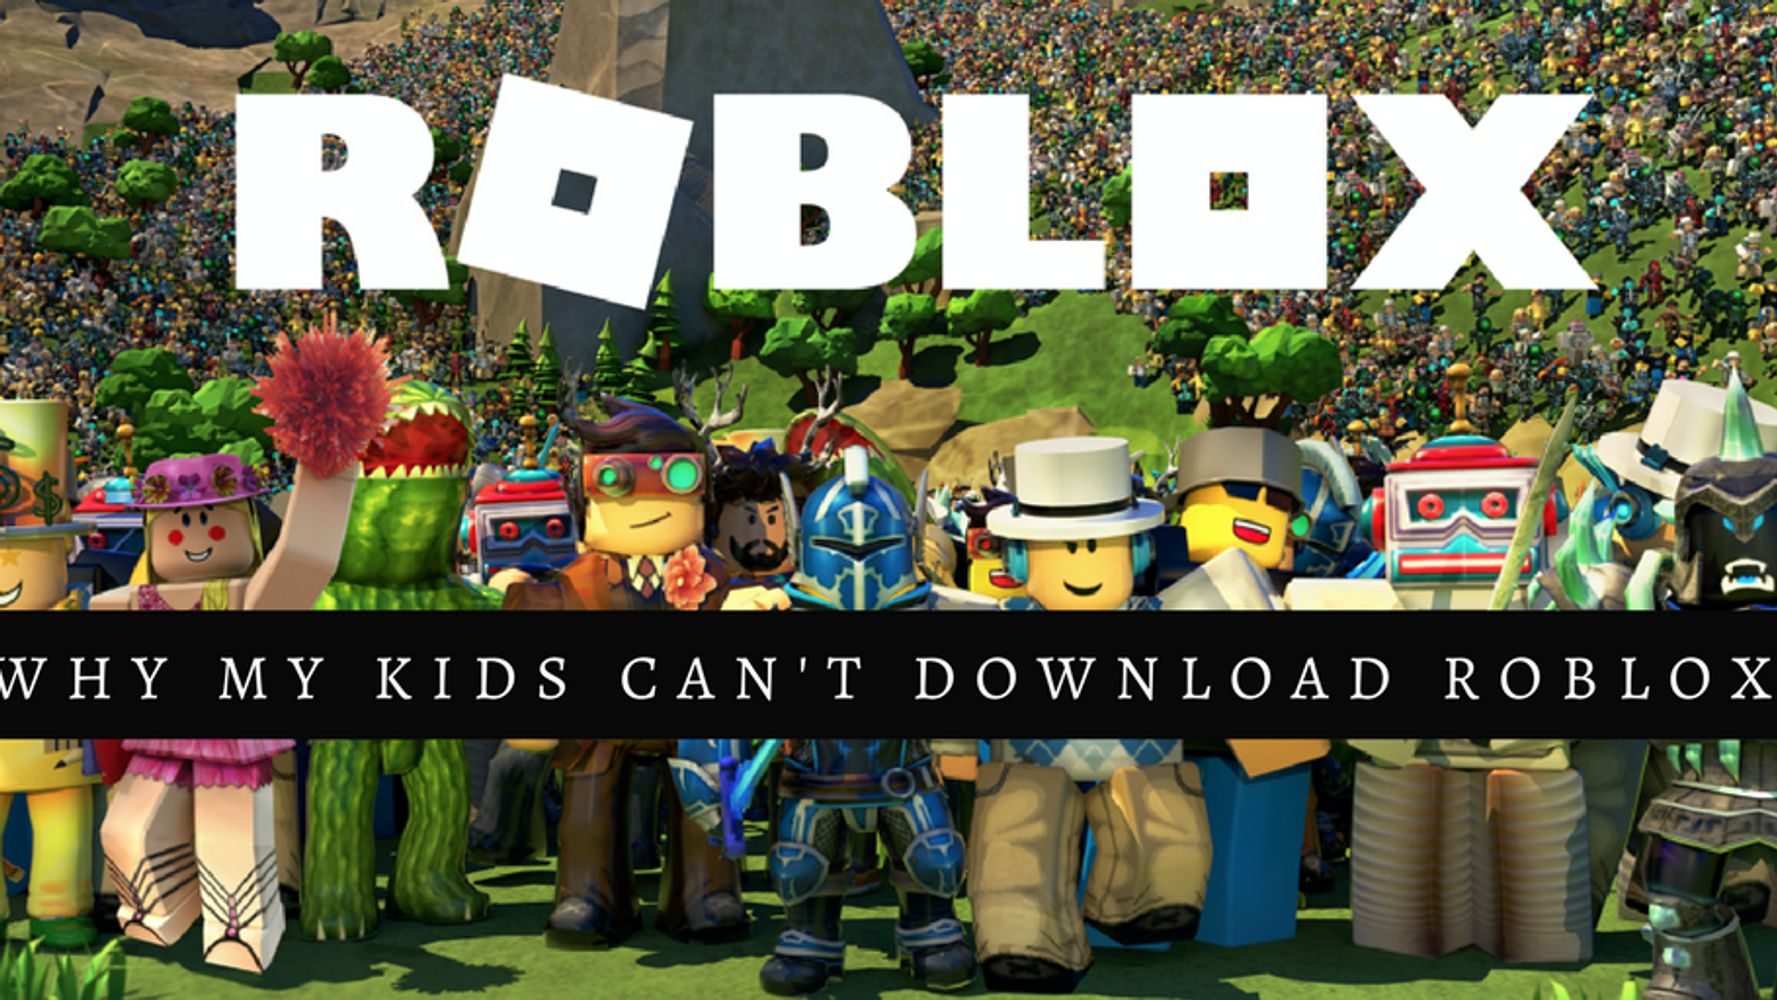 Why You Should Avoid Downloading Roblox on Your Electronics